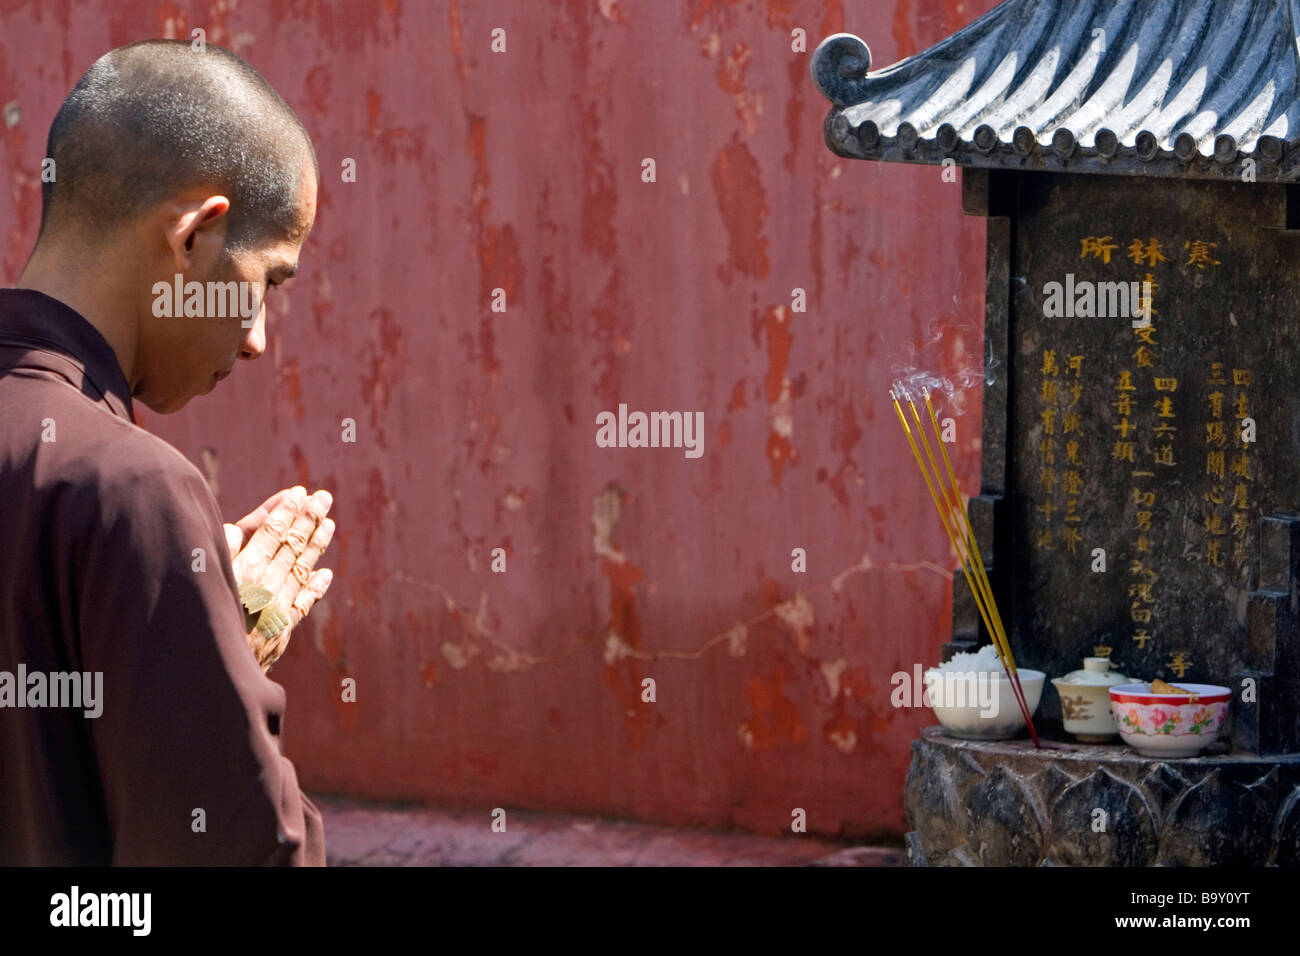 Prayer at the Jade Emperor Pagoda Buddhist temple in Ho Chi Minh City Vietnam - Stock Image